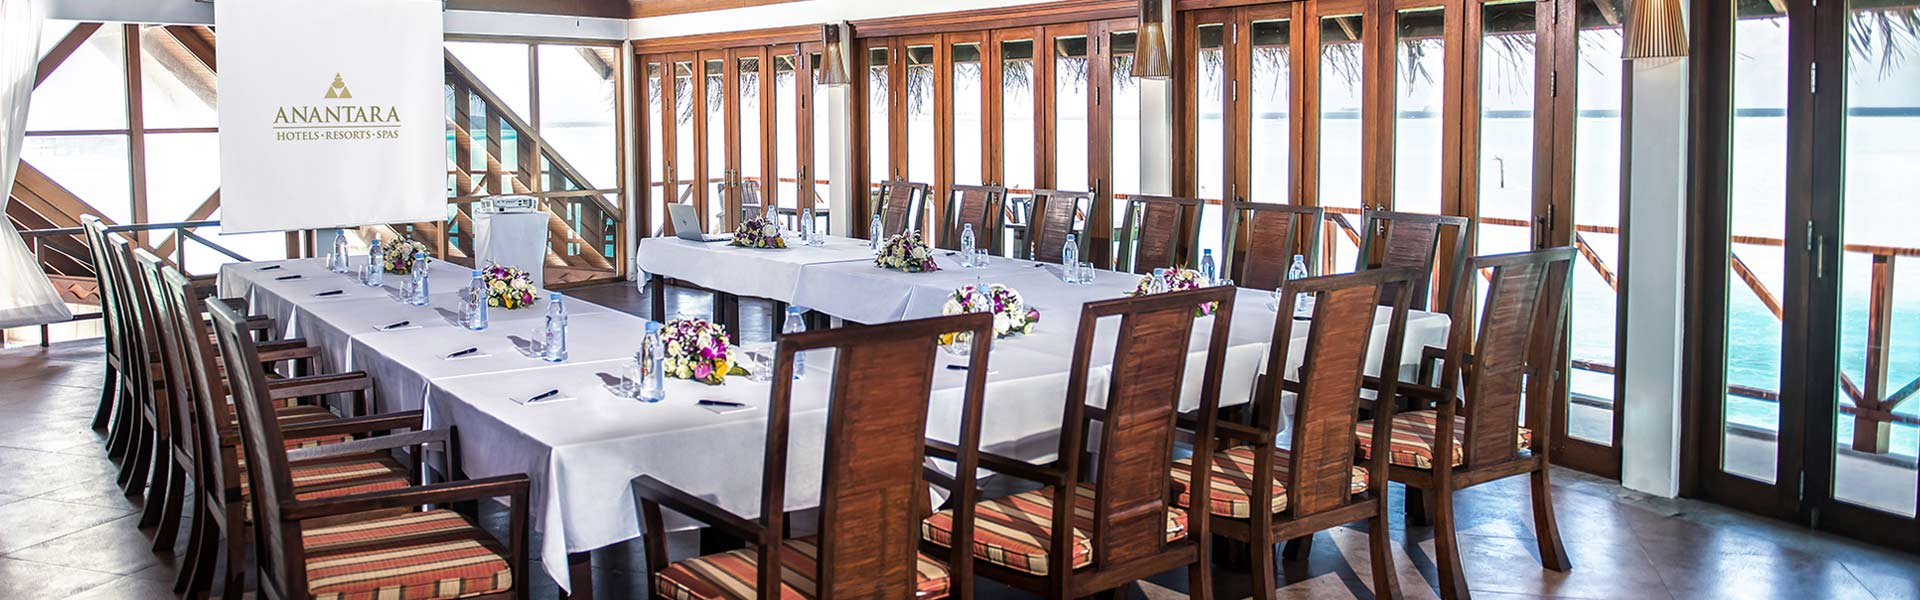 Meeting Hotel Maldives | Meetings at Anantara Dhigu Maldives